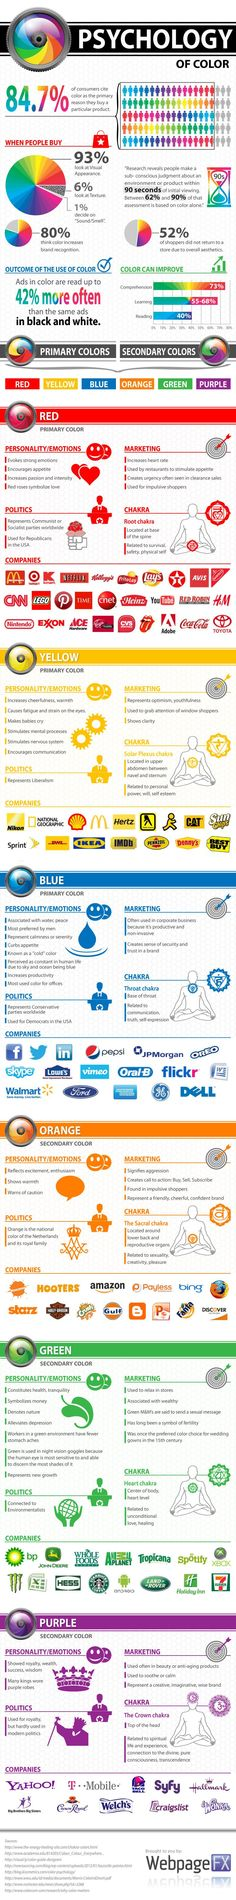 http://aktpromotions.com #Health #Fitness The psychology of color #infographic